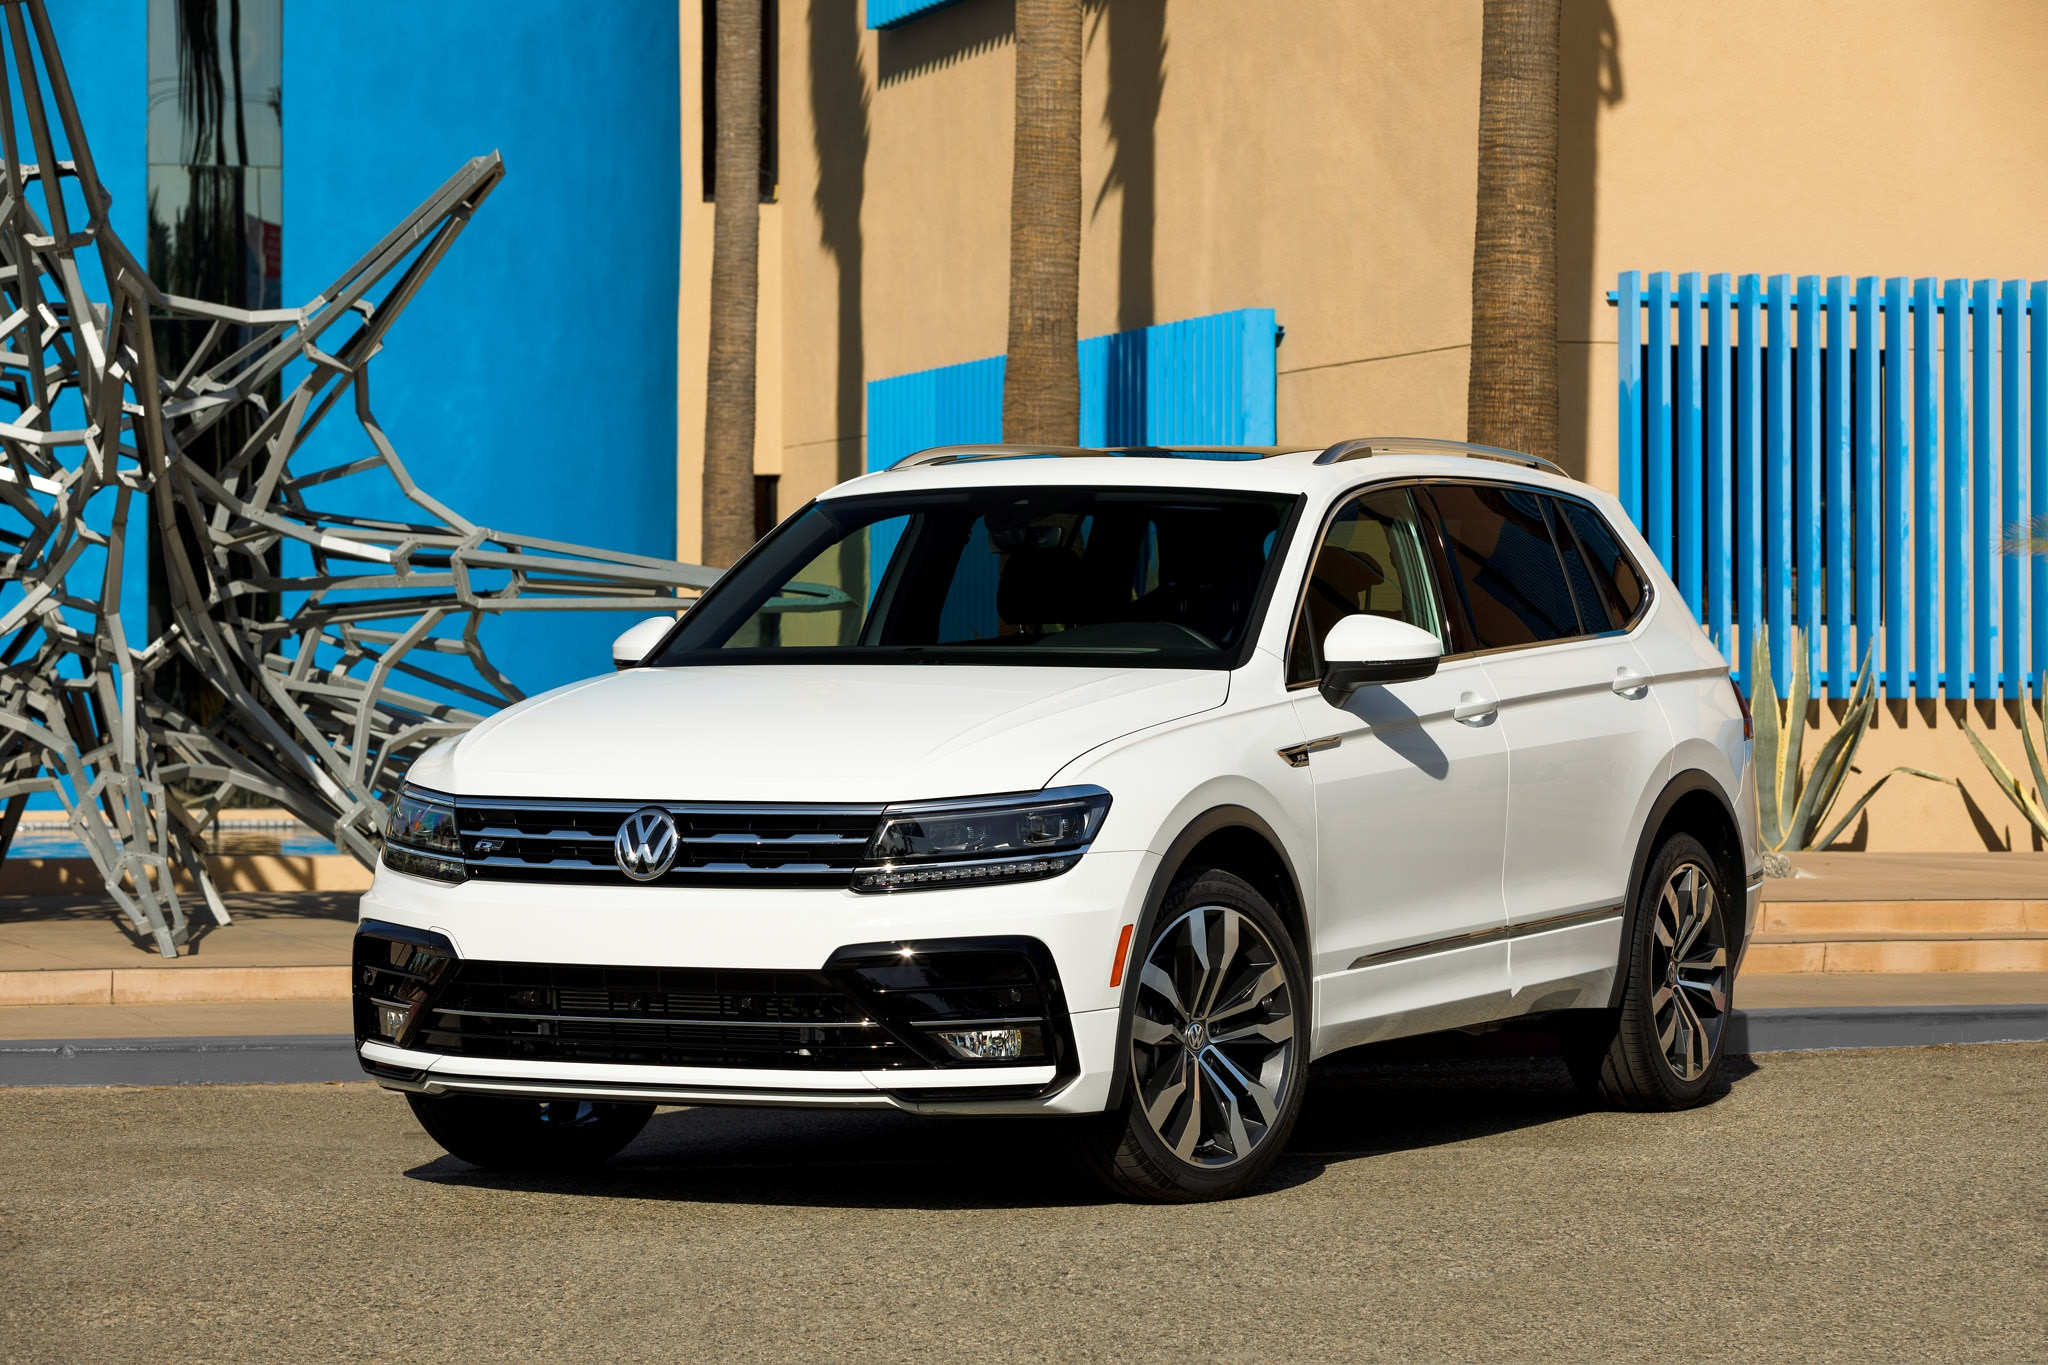 Volkswagen adds performance-inspired R-Line option to 2018 Tiguan